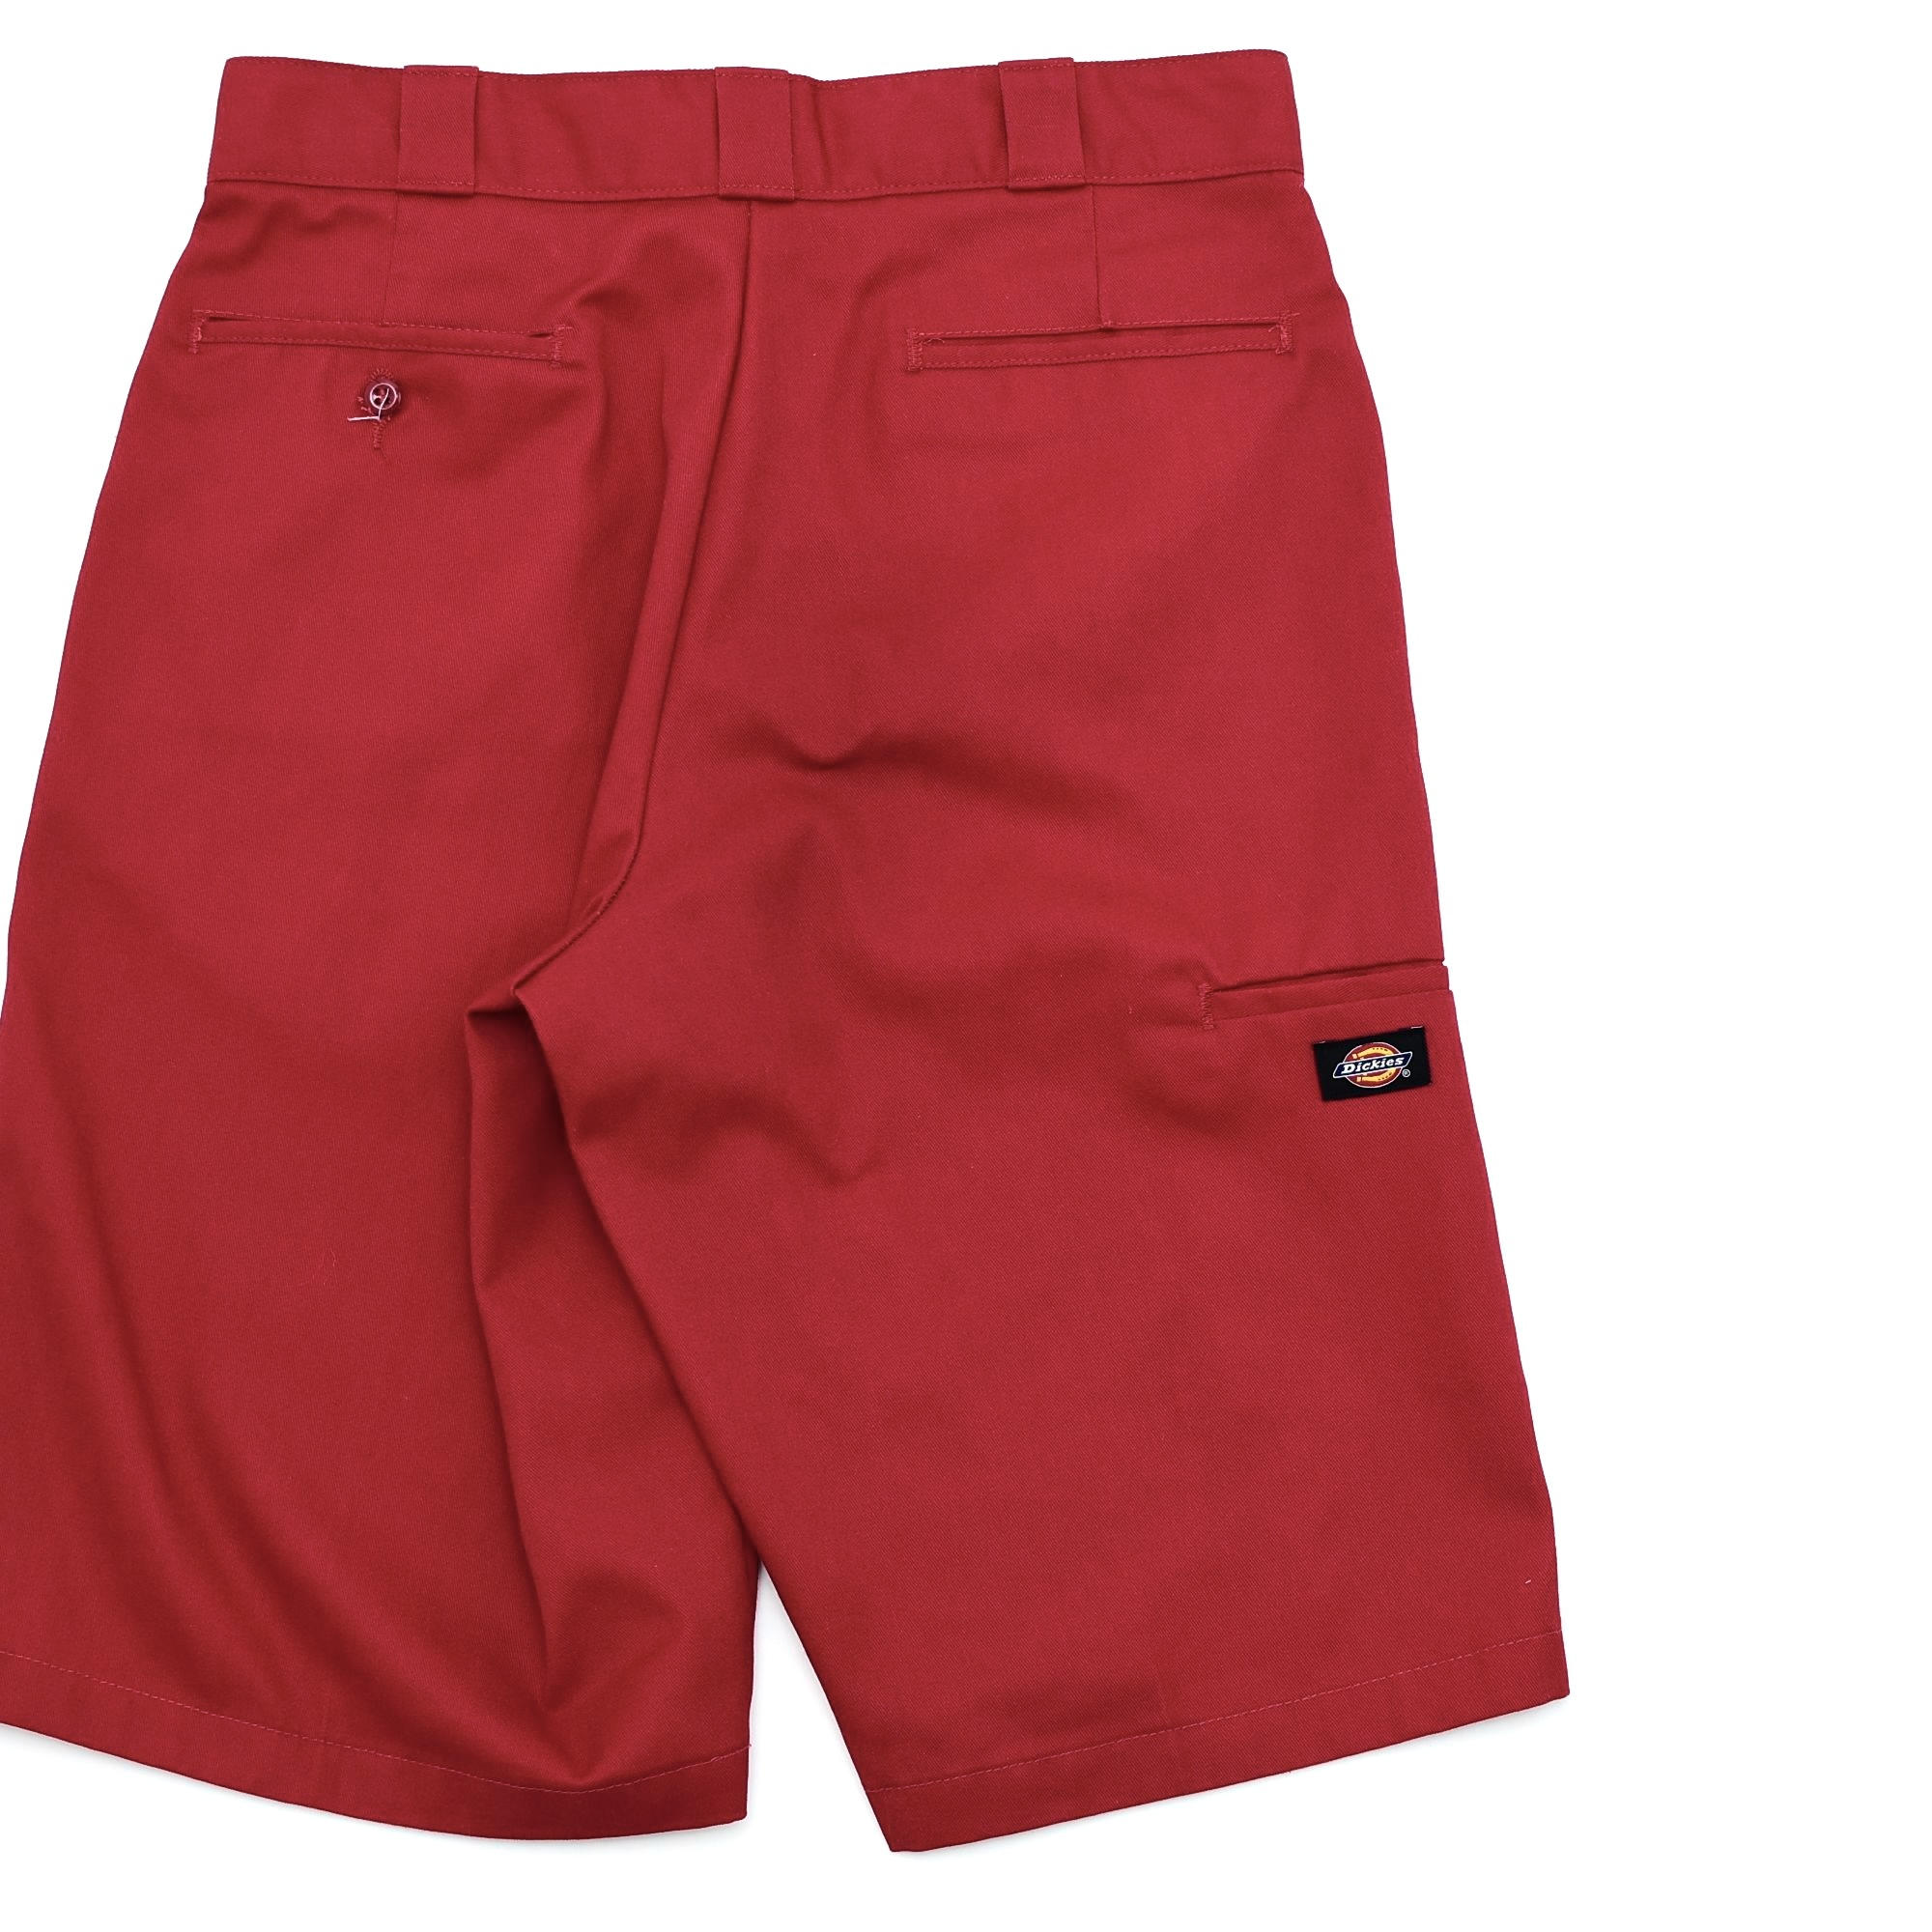 Dickies 13inch red color work shorts